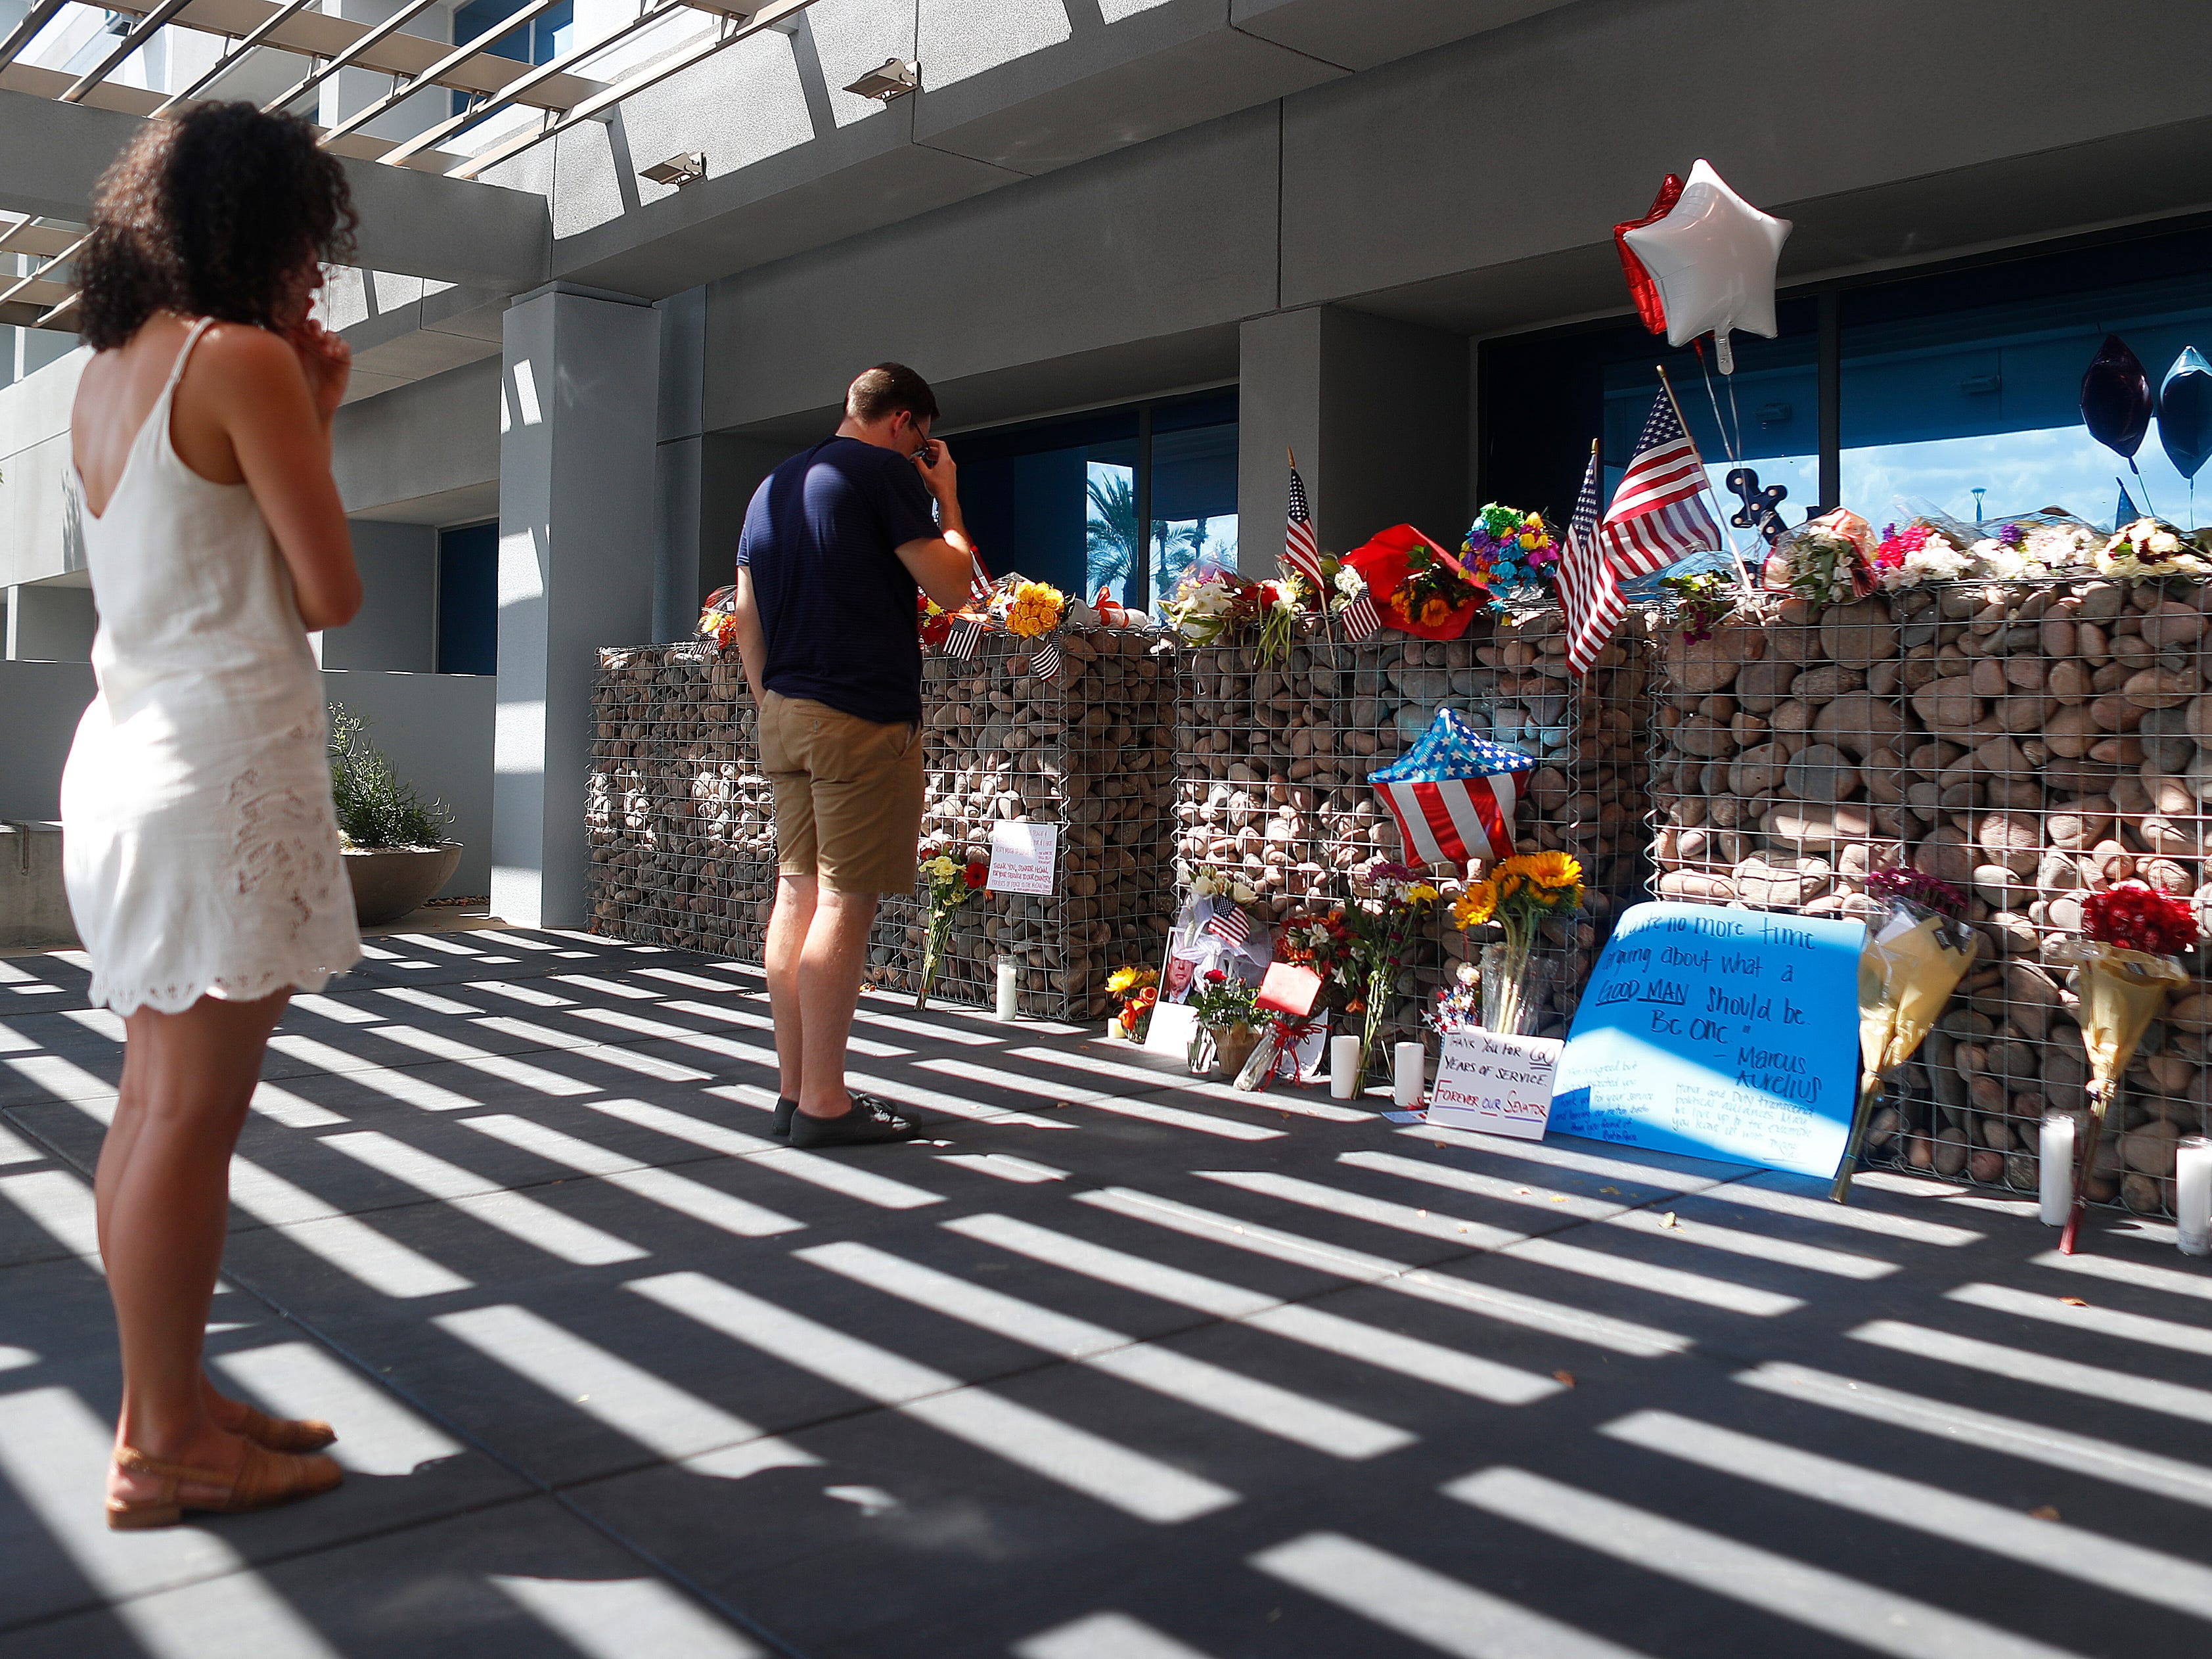 Cass Possehl watches as her friend Michael Einstein lays flowers at a memorial outside Sen. John McCain's offices in Phoenix on Aug. 26, 2018.